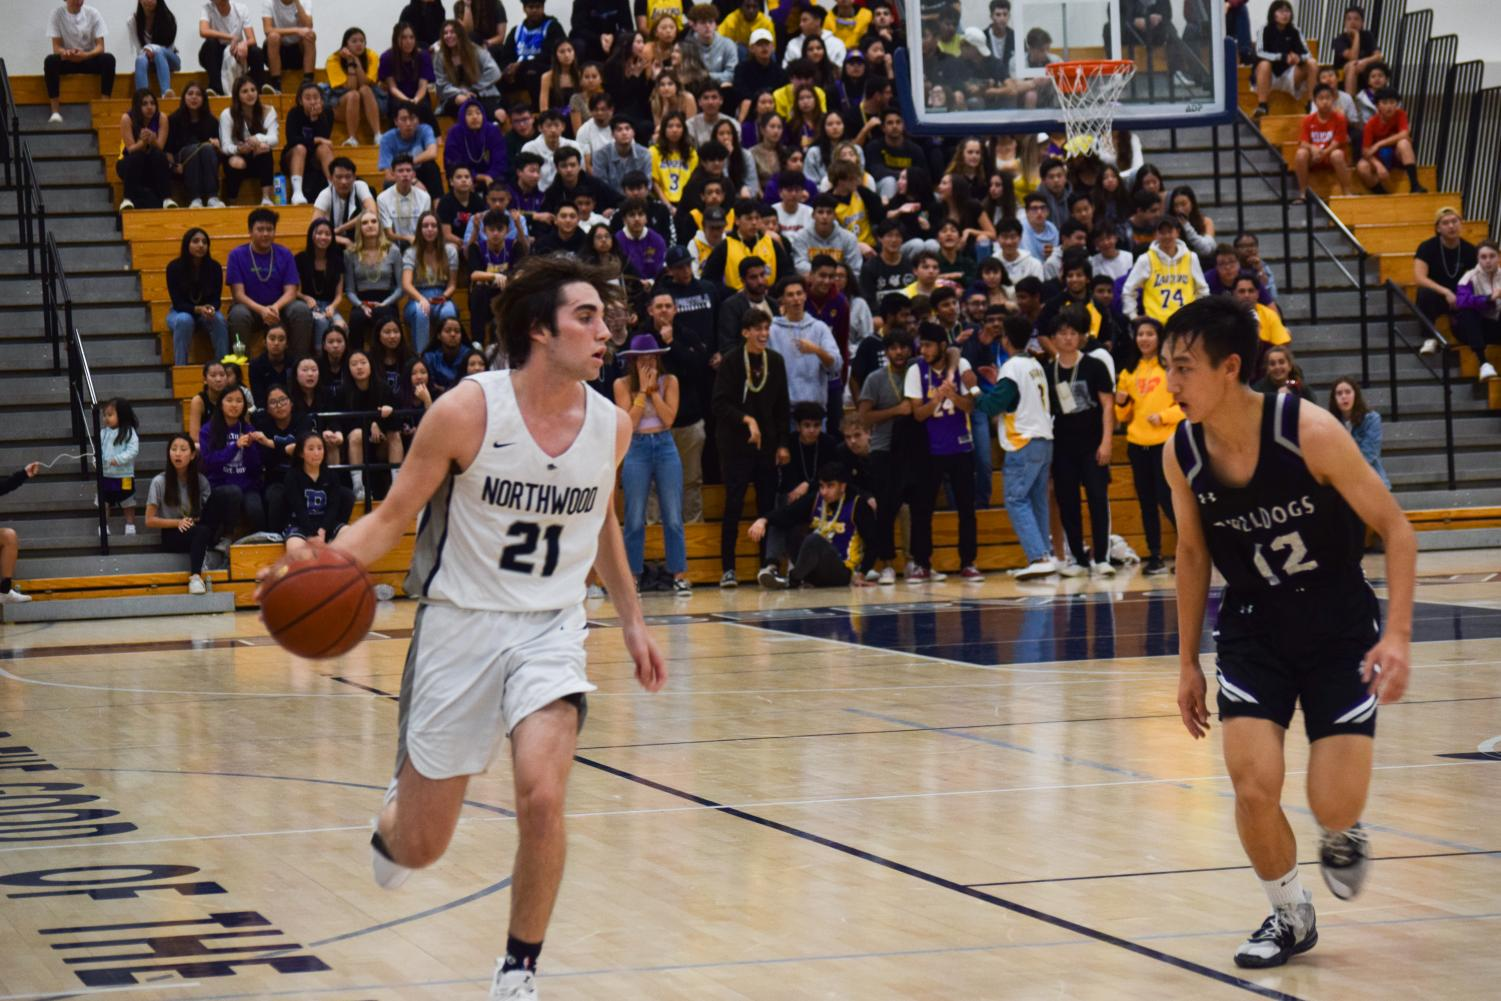 HOME COURT ADVANTAGE: Senior Shandon Sharifi carefully handles the ball against the Portola defender.